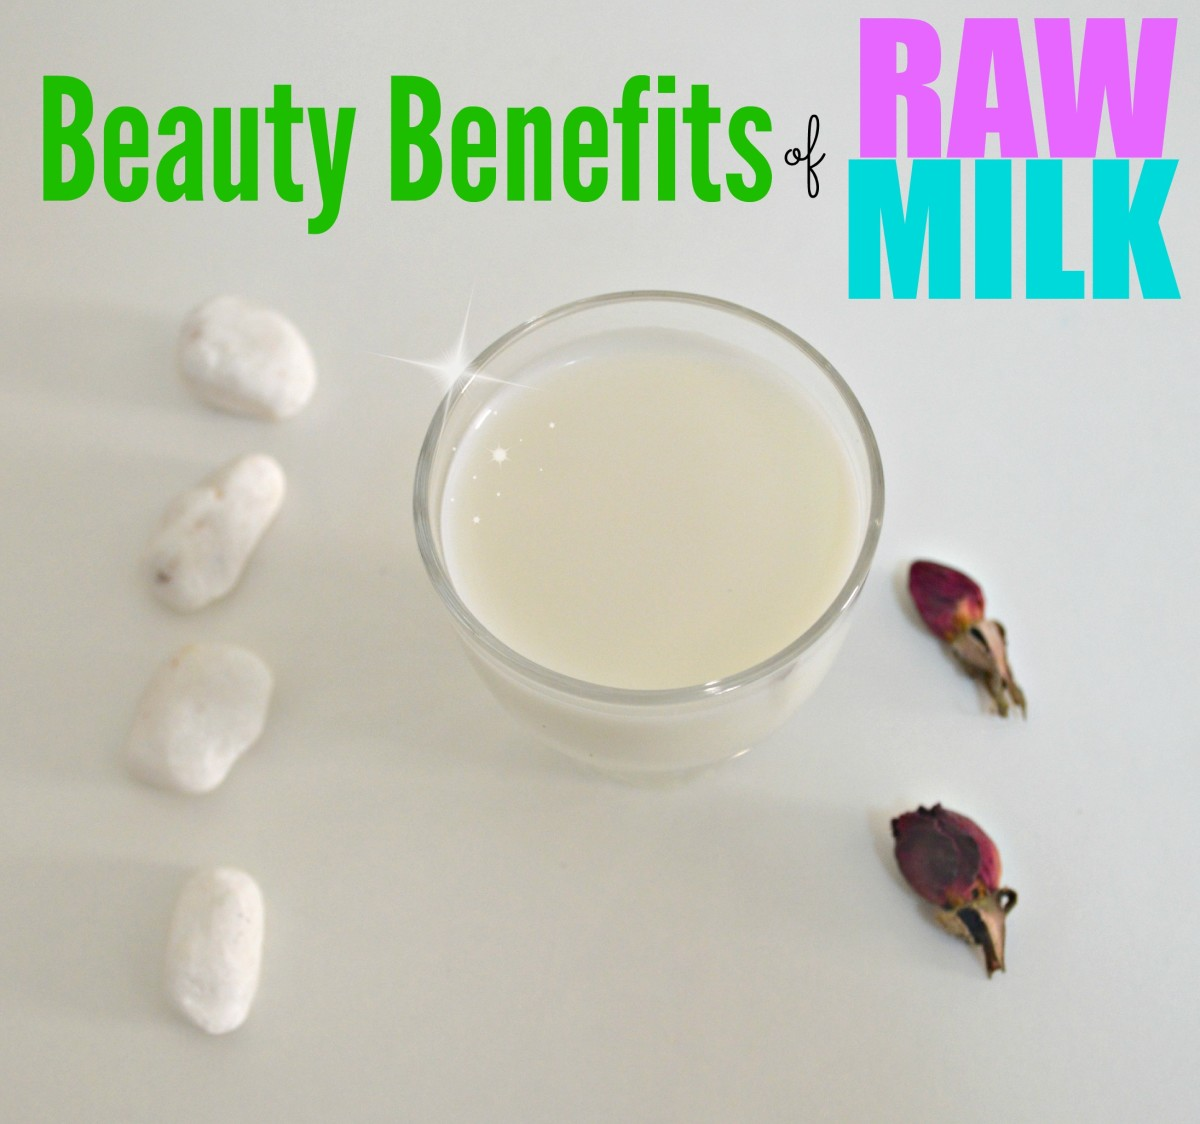 Top 5 Skin Benefits of Raw Milk and Beauty Tips